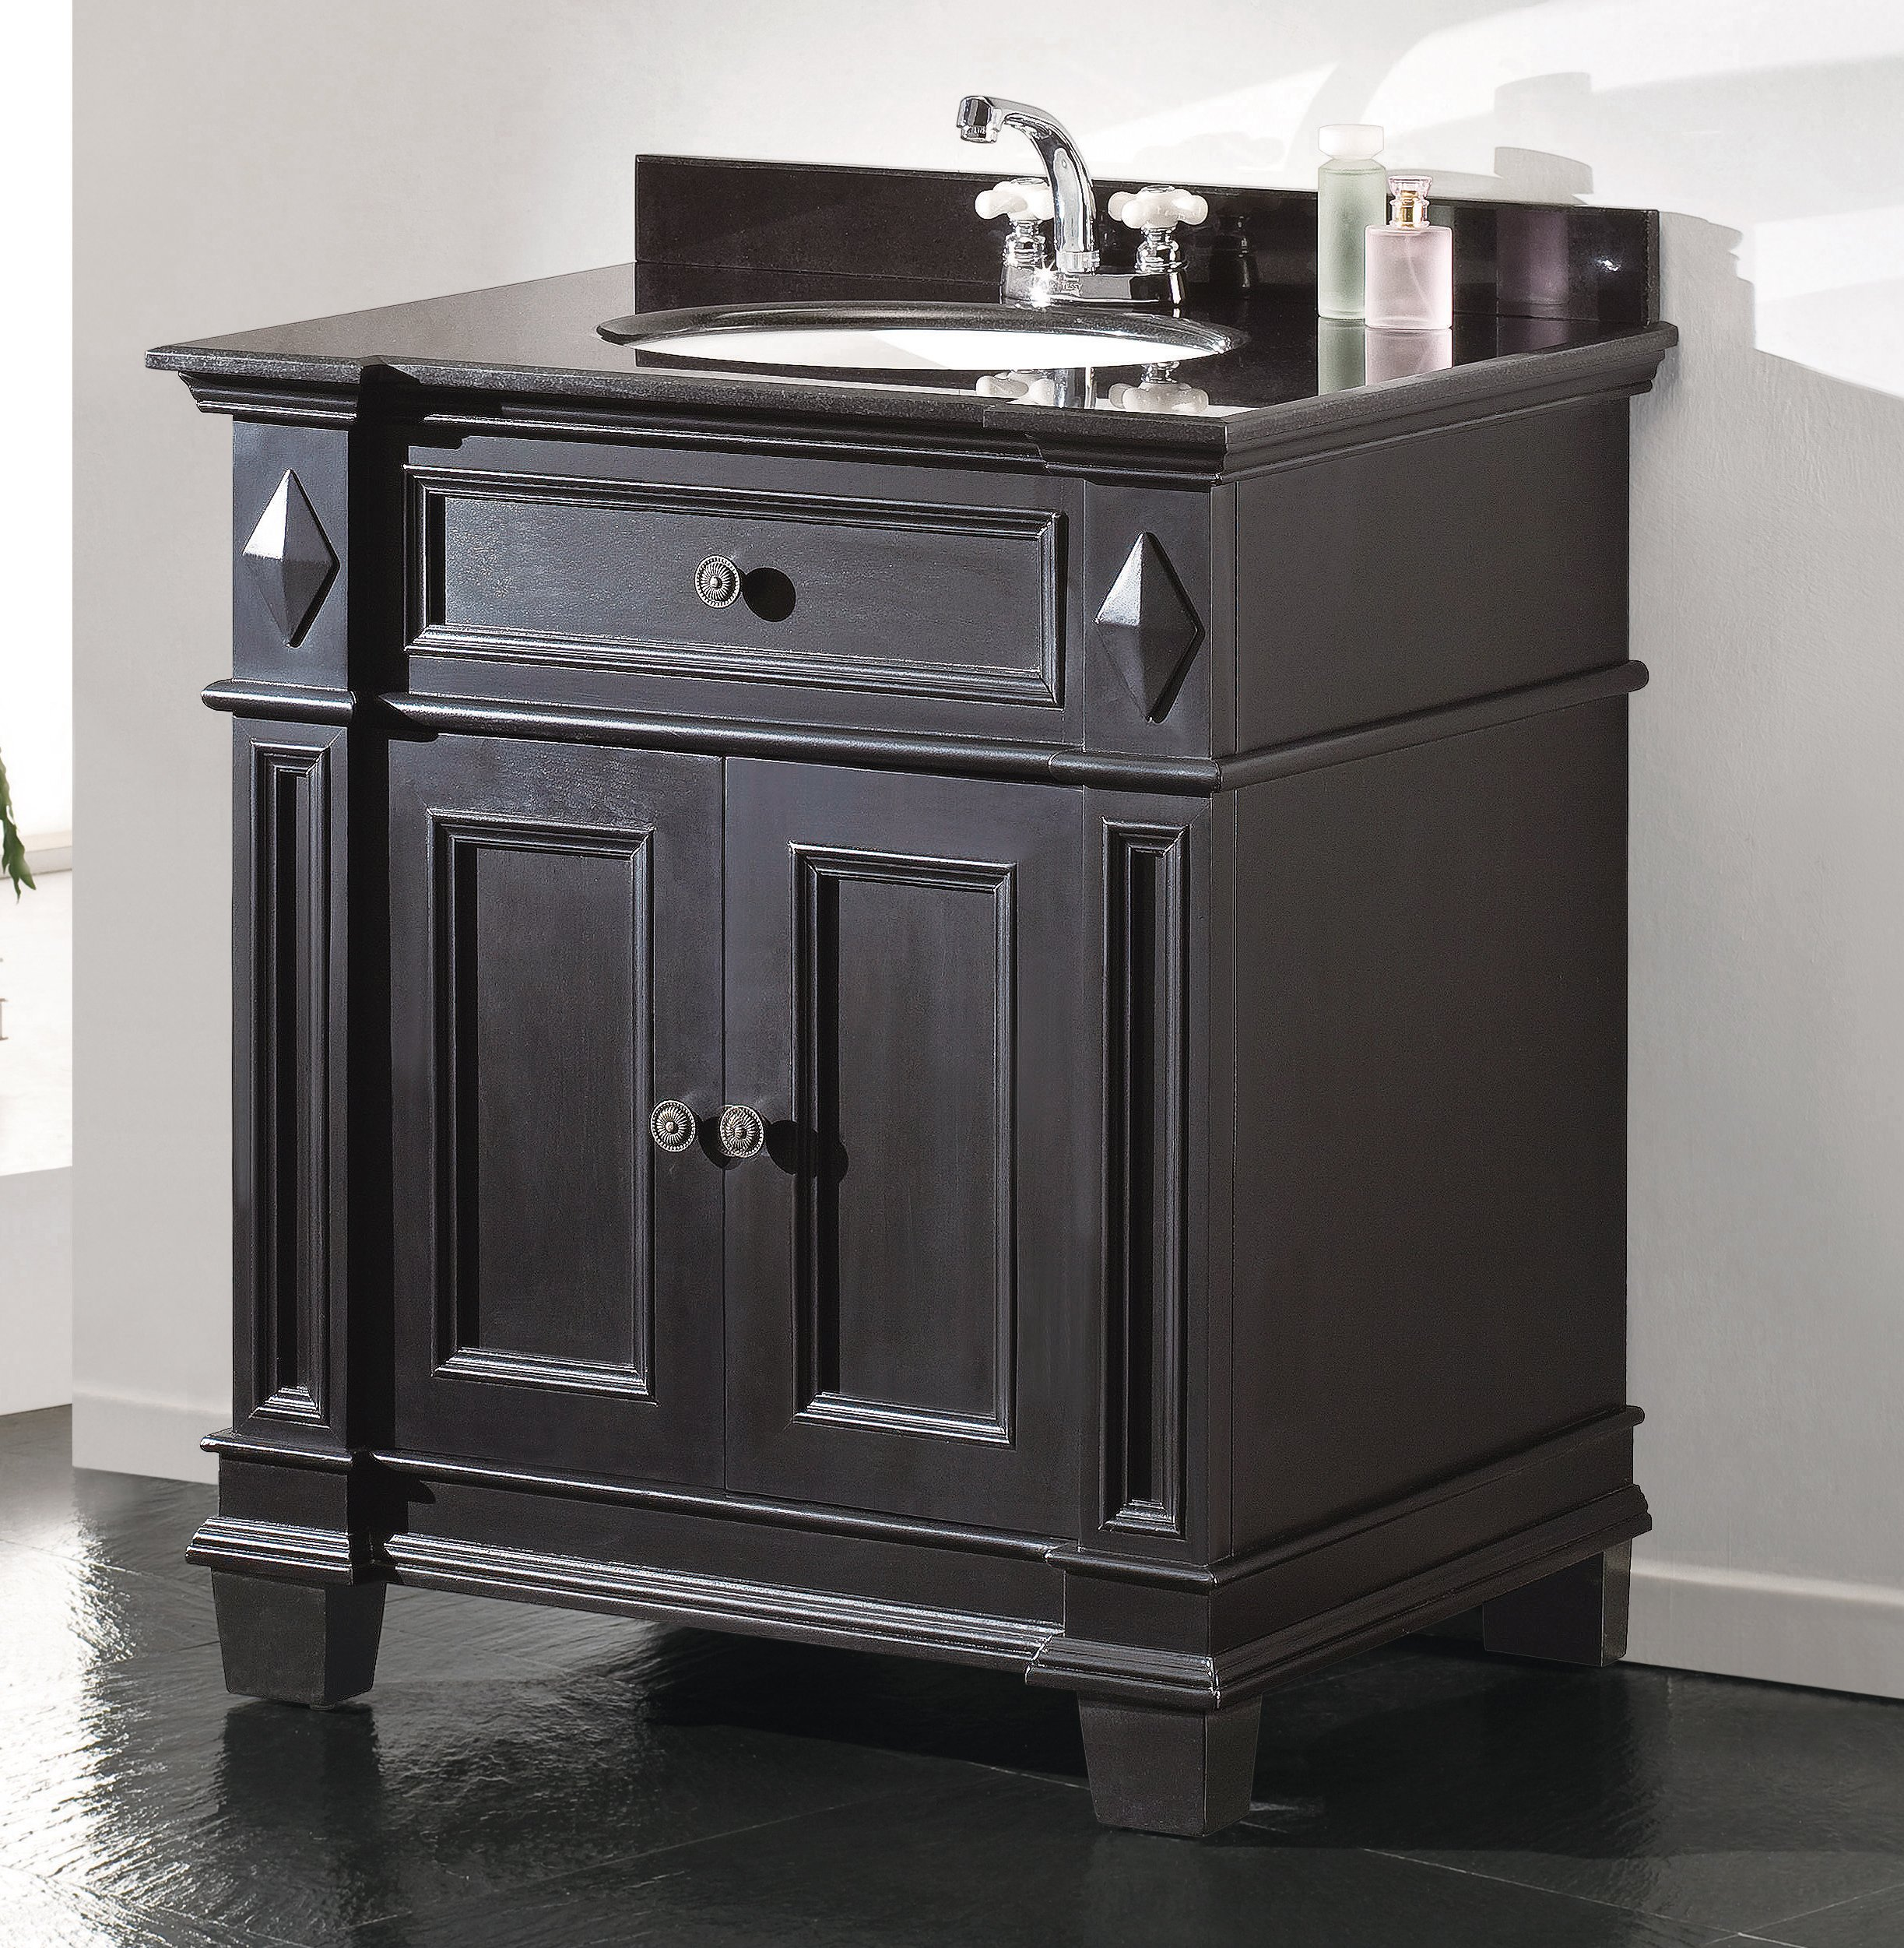 Ove Decors Essex VB Vanity with Black Marble Countertop with Ceramic Basin, 31-Inch Wide, Espresso - Bathroom vanity with granite countertop CUPC ceramic basin Comes fully assembled - bathroom-vanities, bathroom-fixtures-hardware, bathroom - A1onSqJGfqL -